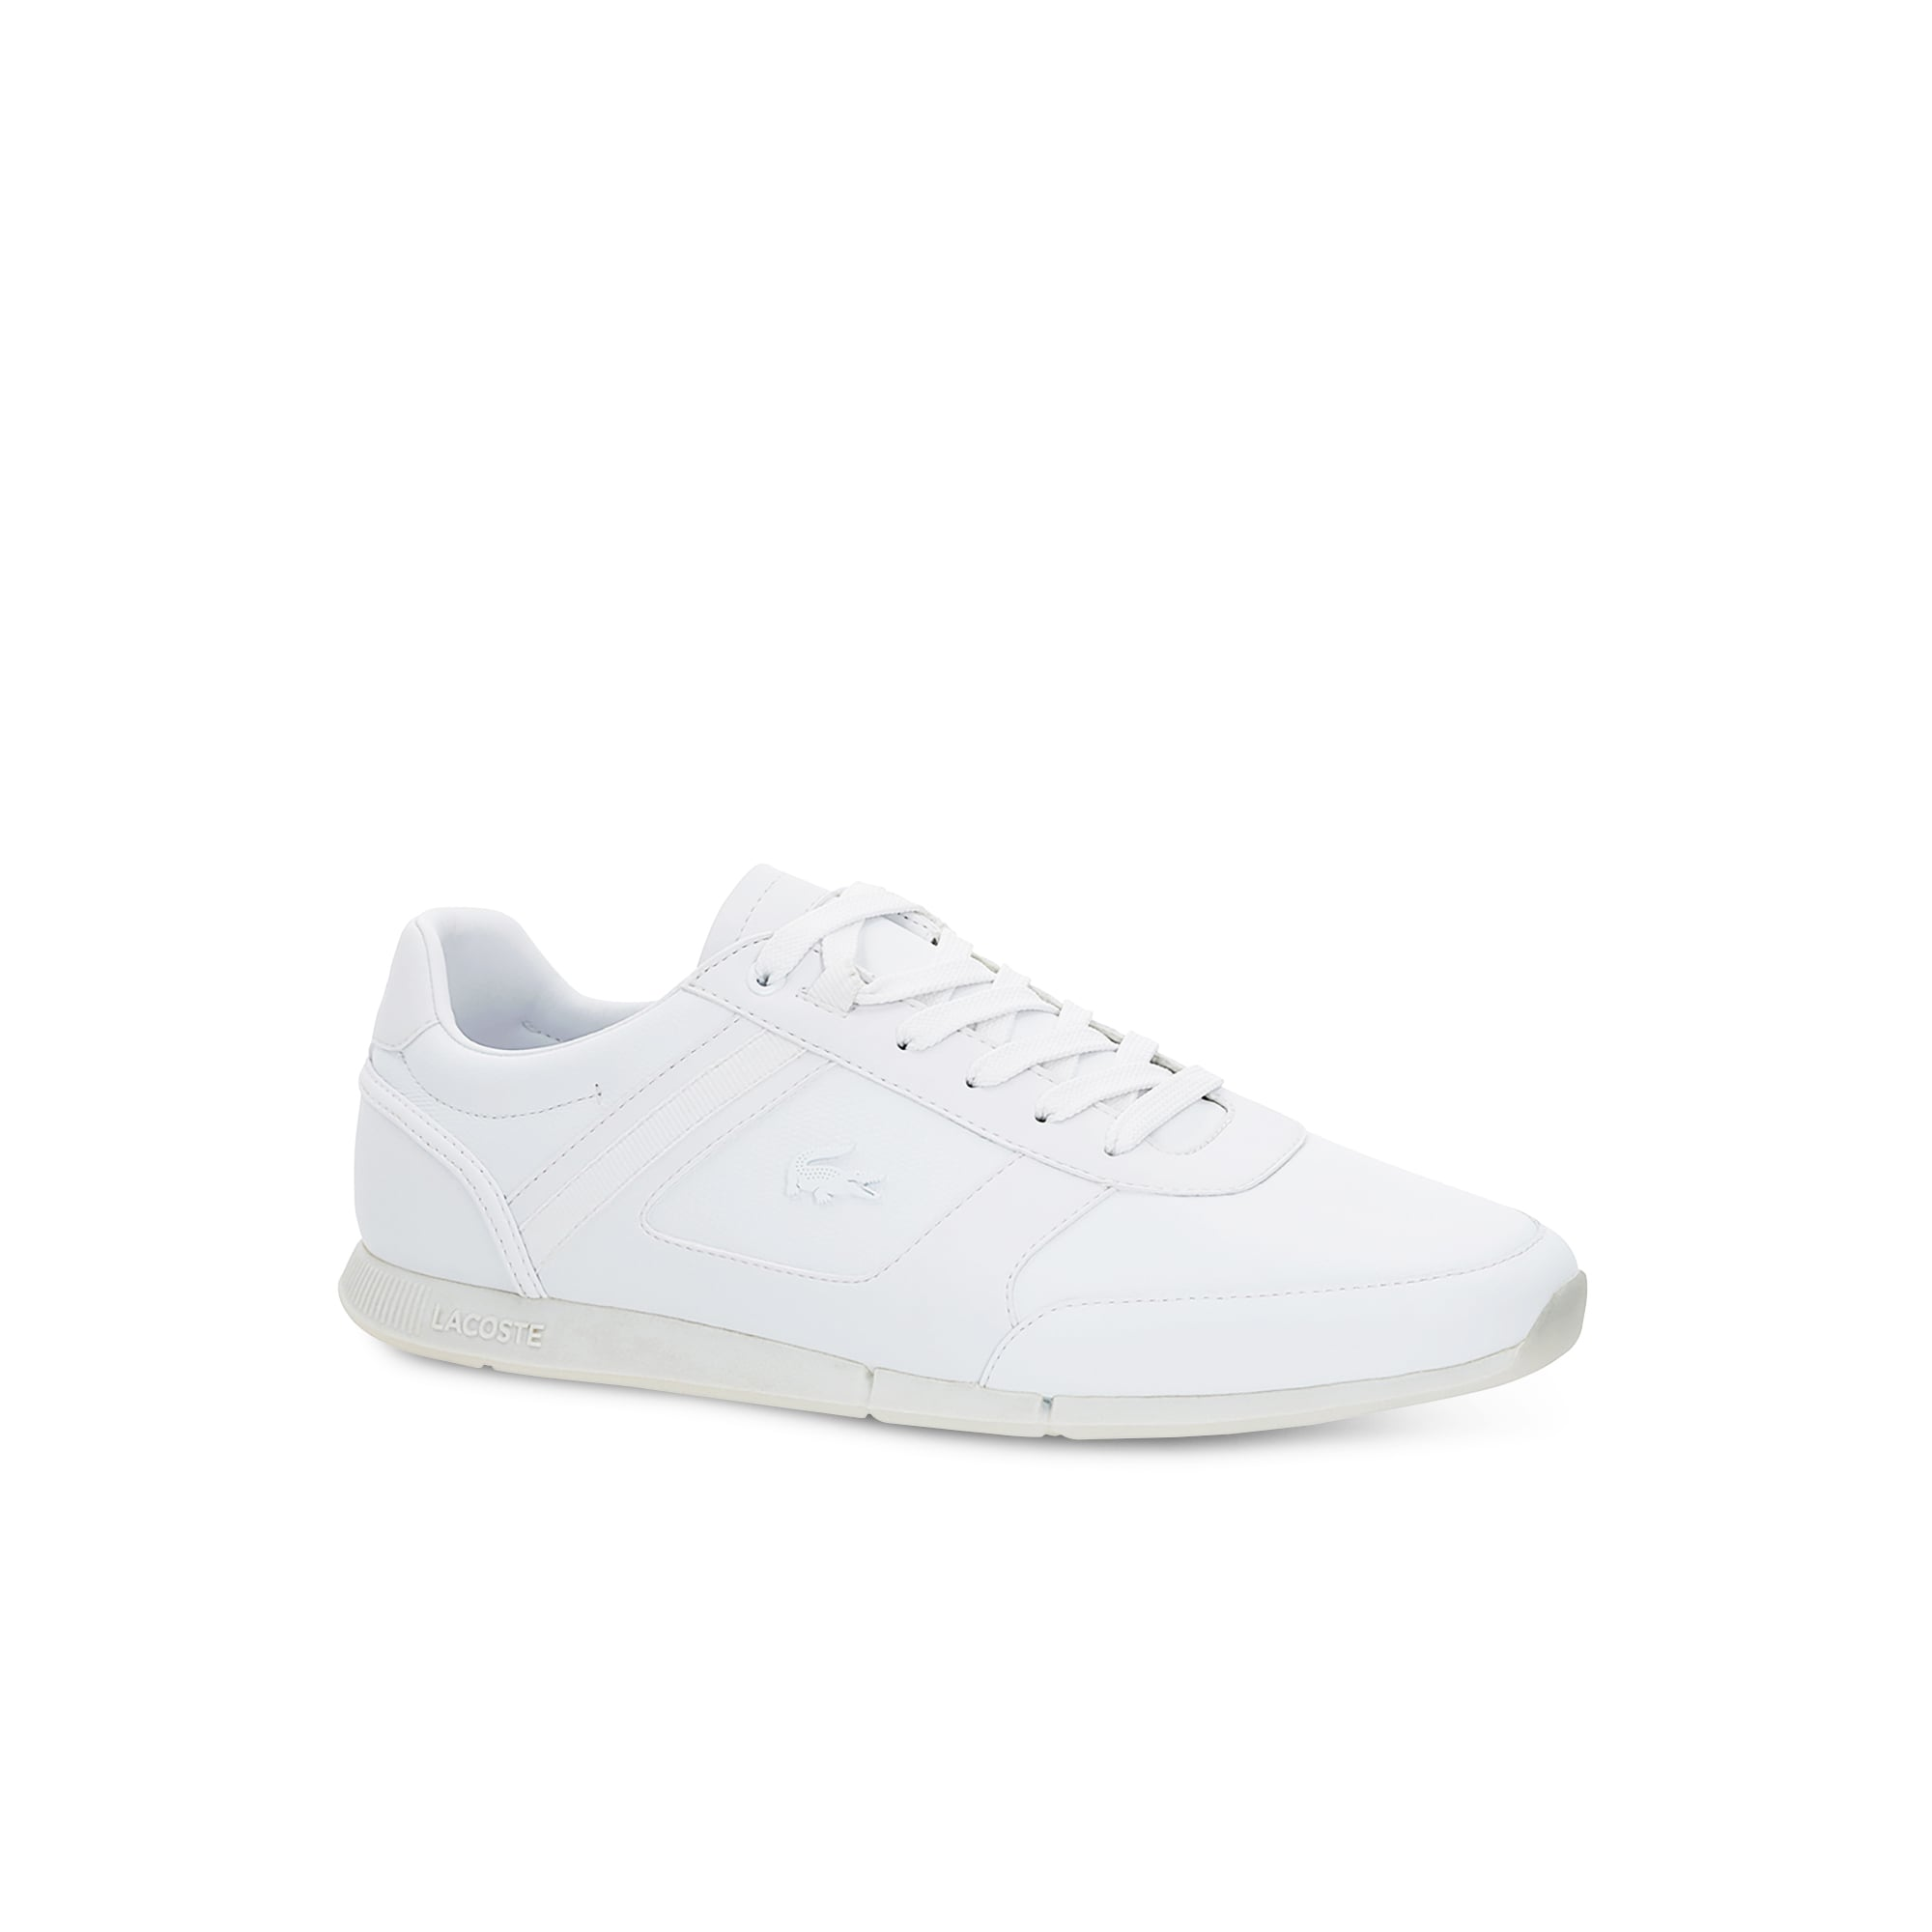 b929ffbd3227 Lacoste shoes for men  Sneakers